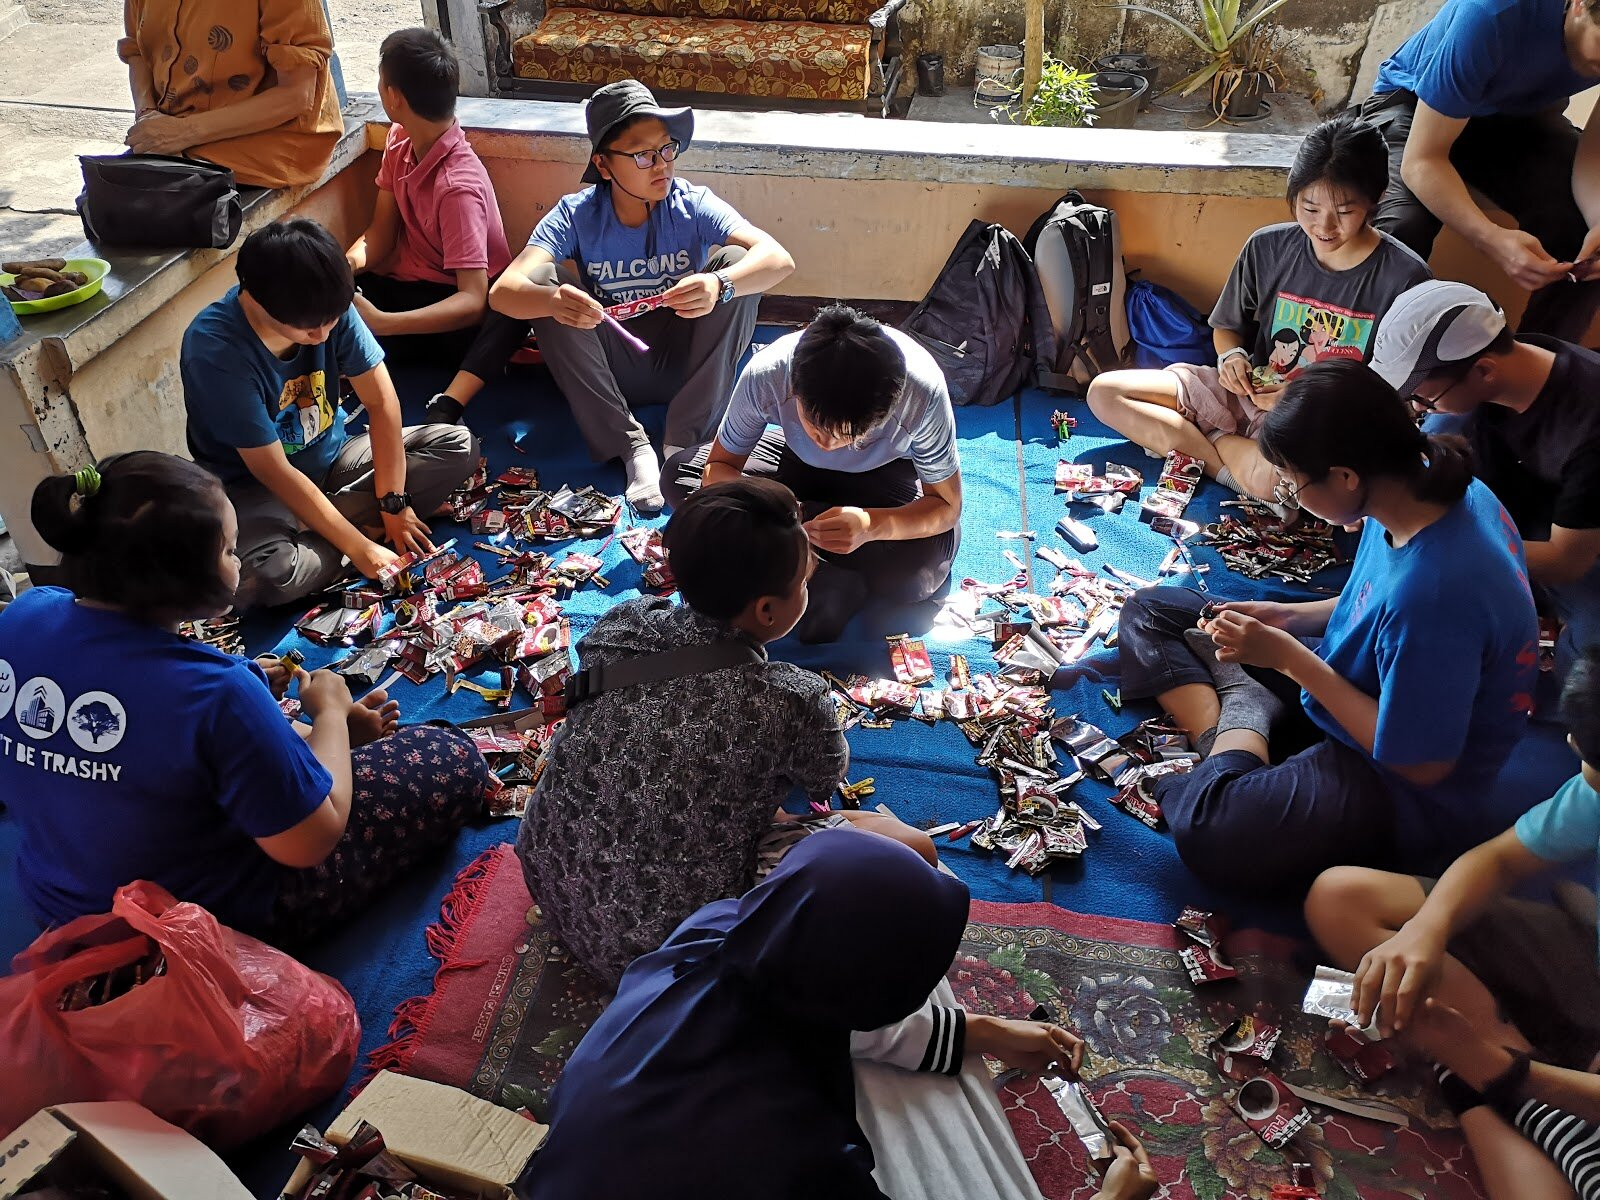 Keystone youths learning the art of weaving plastics into purses and bags as part of the 'Recycling Plastics into Bags' project with Friends of Menjangan.